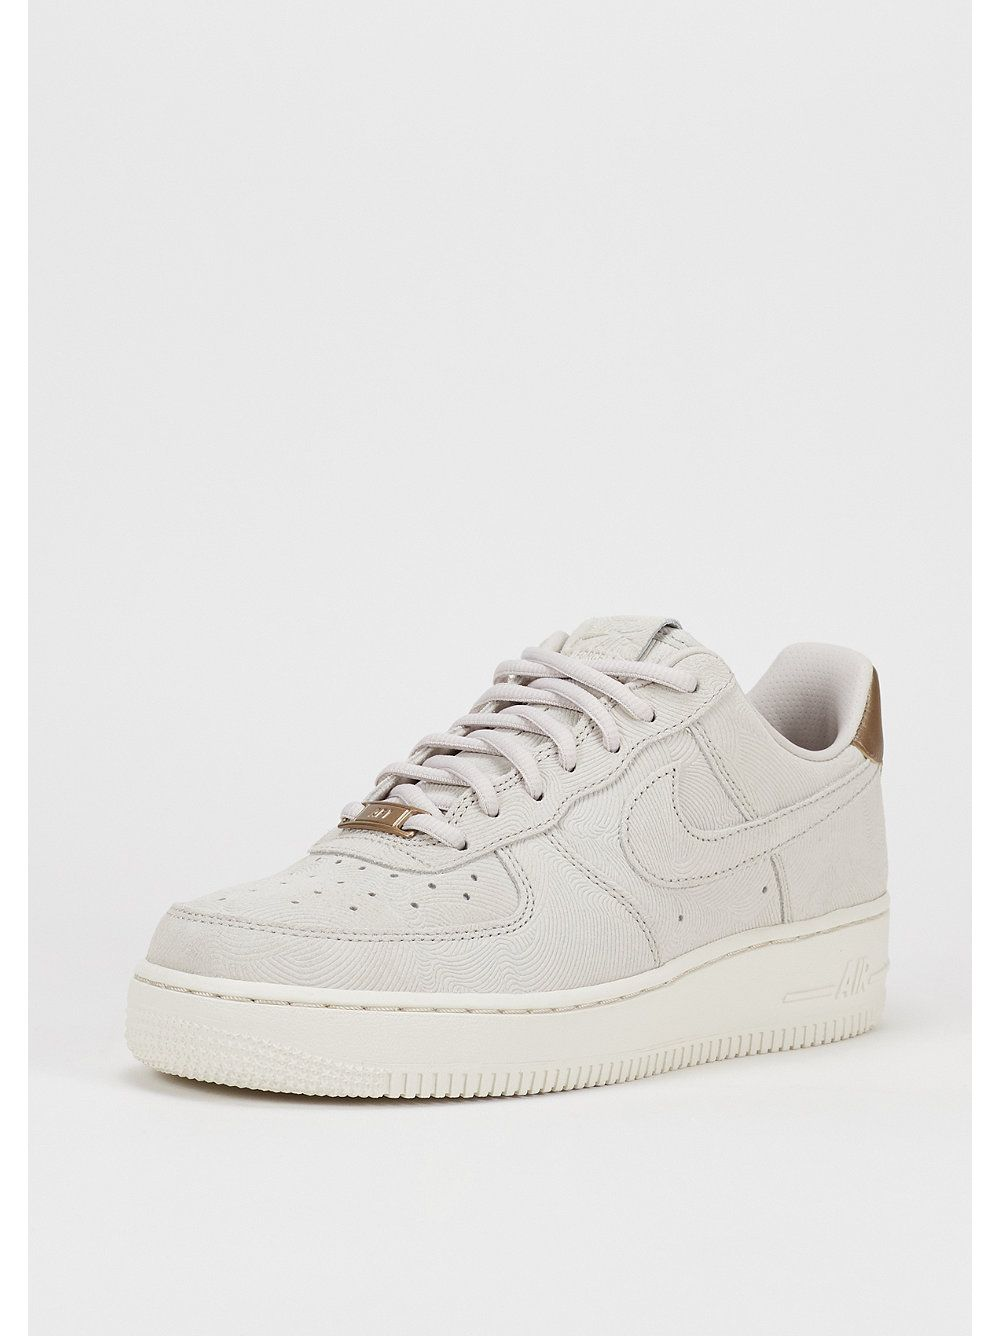 nike air force 1 velcro swoosh sail nz